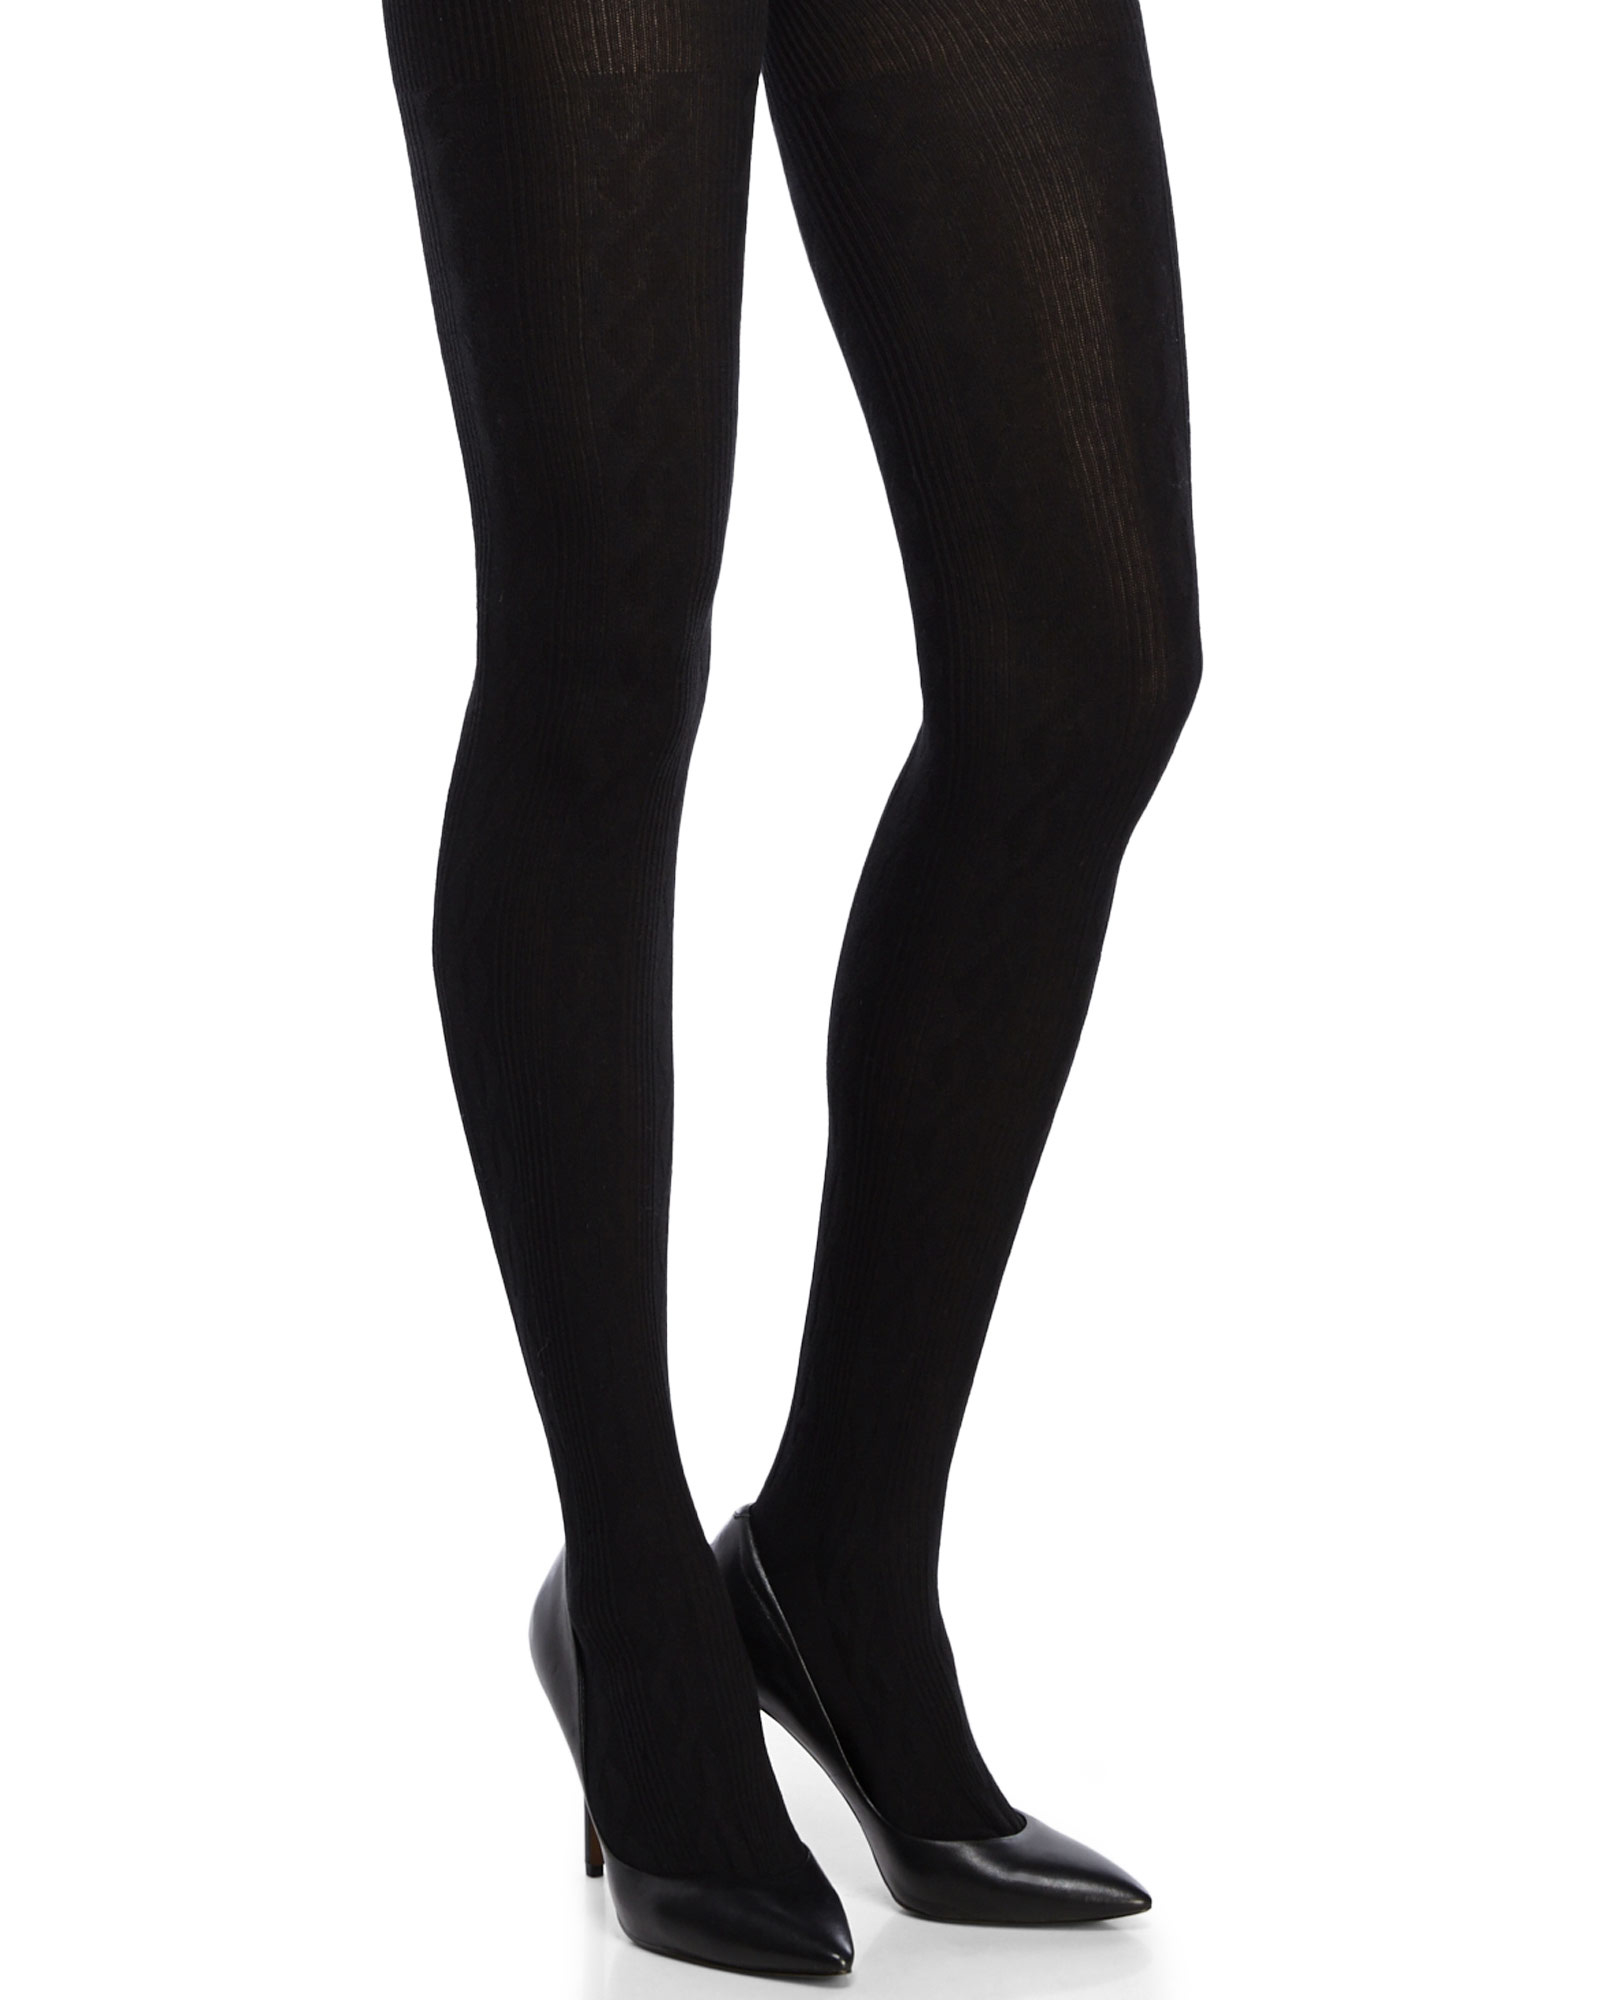 b3495837be654 Gallery. Previously sold at: Century 21 · Women's Black Tights Women's  Cable Knit Sweaters